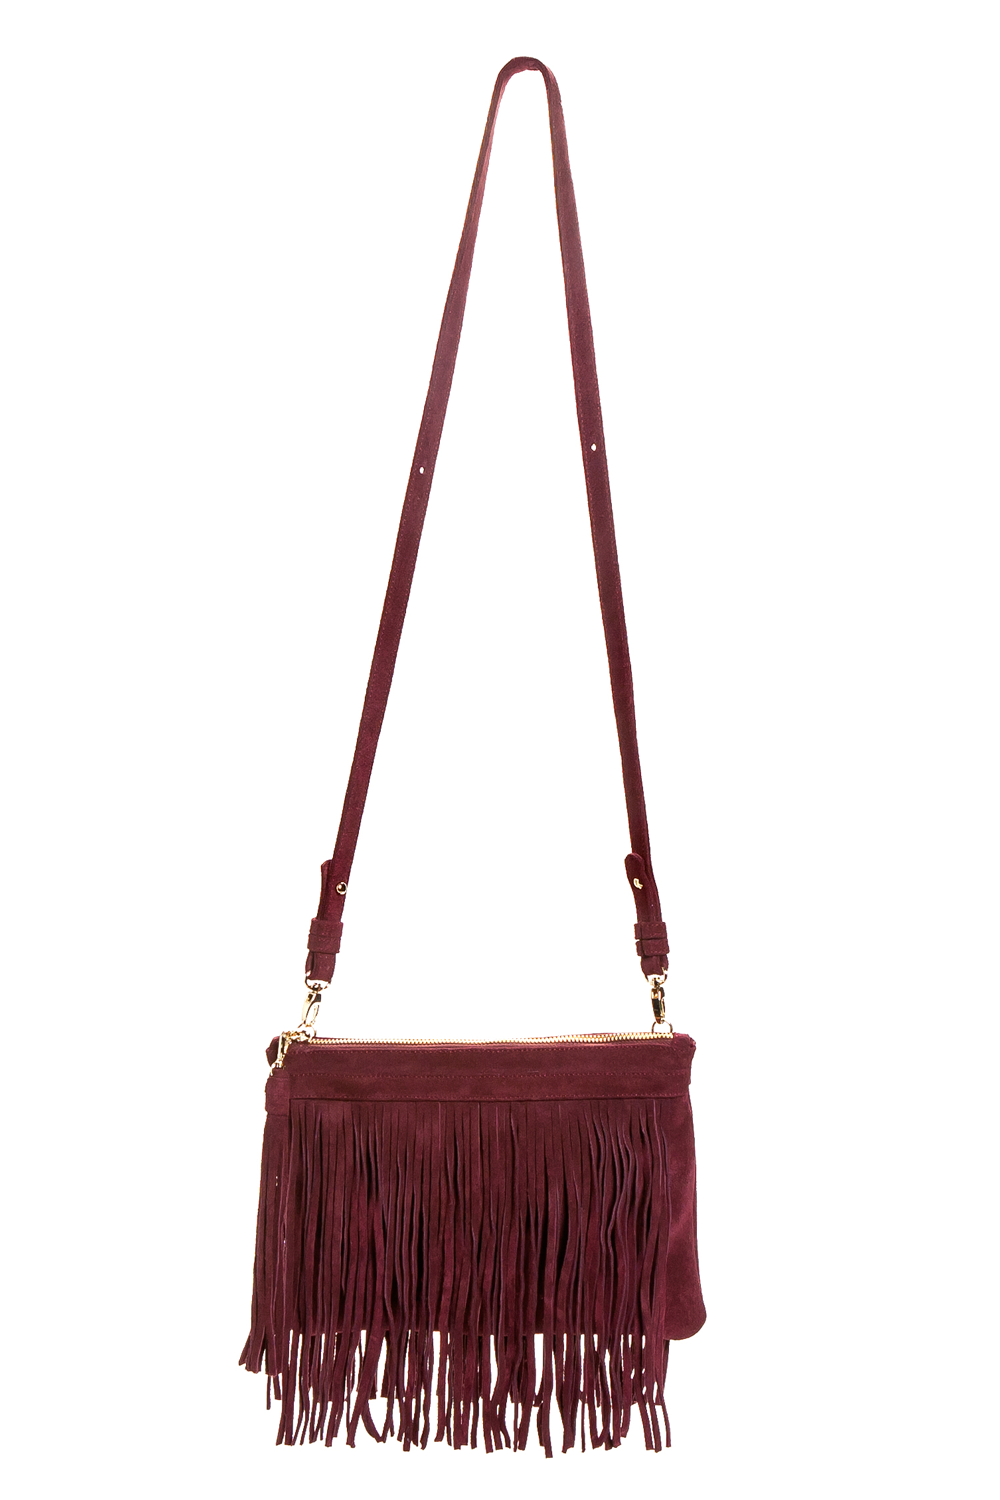 Mel Boteri | 'Mini Taylea' Burgundy Suede Fringed Bag | Front View